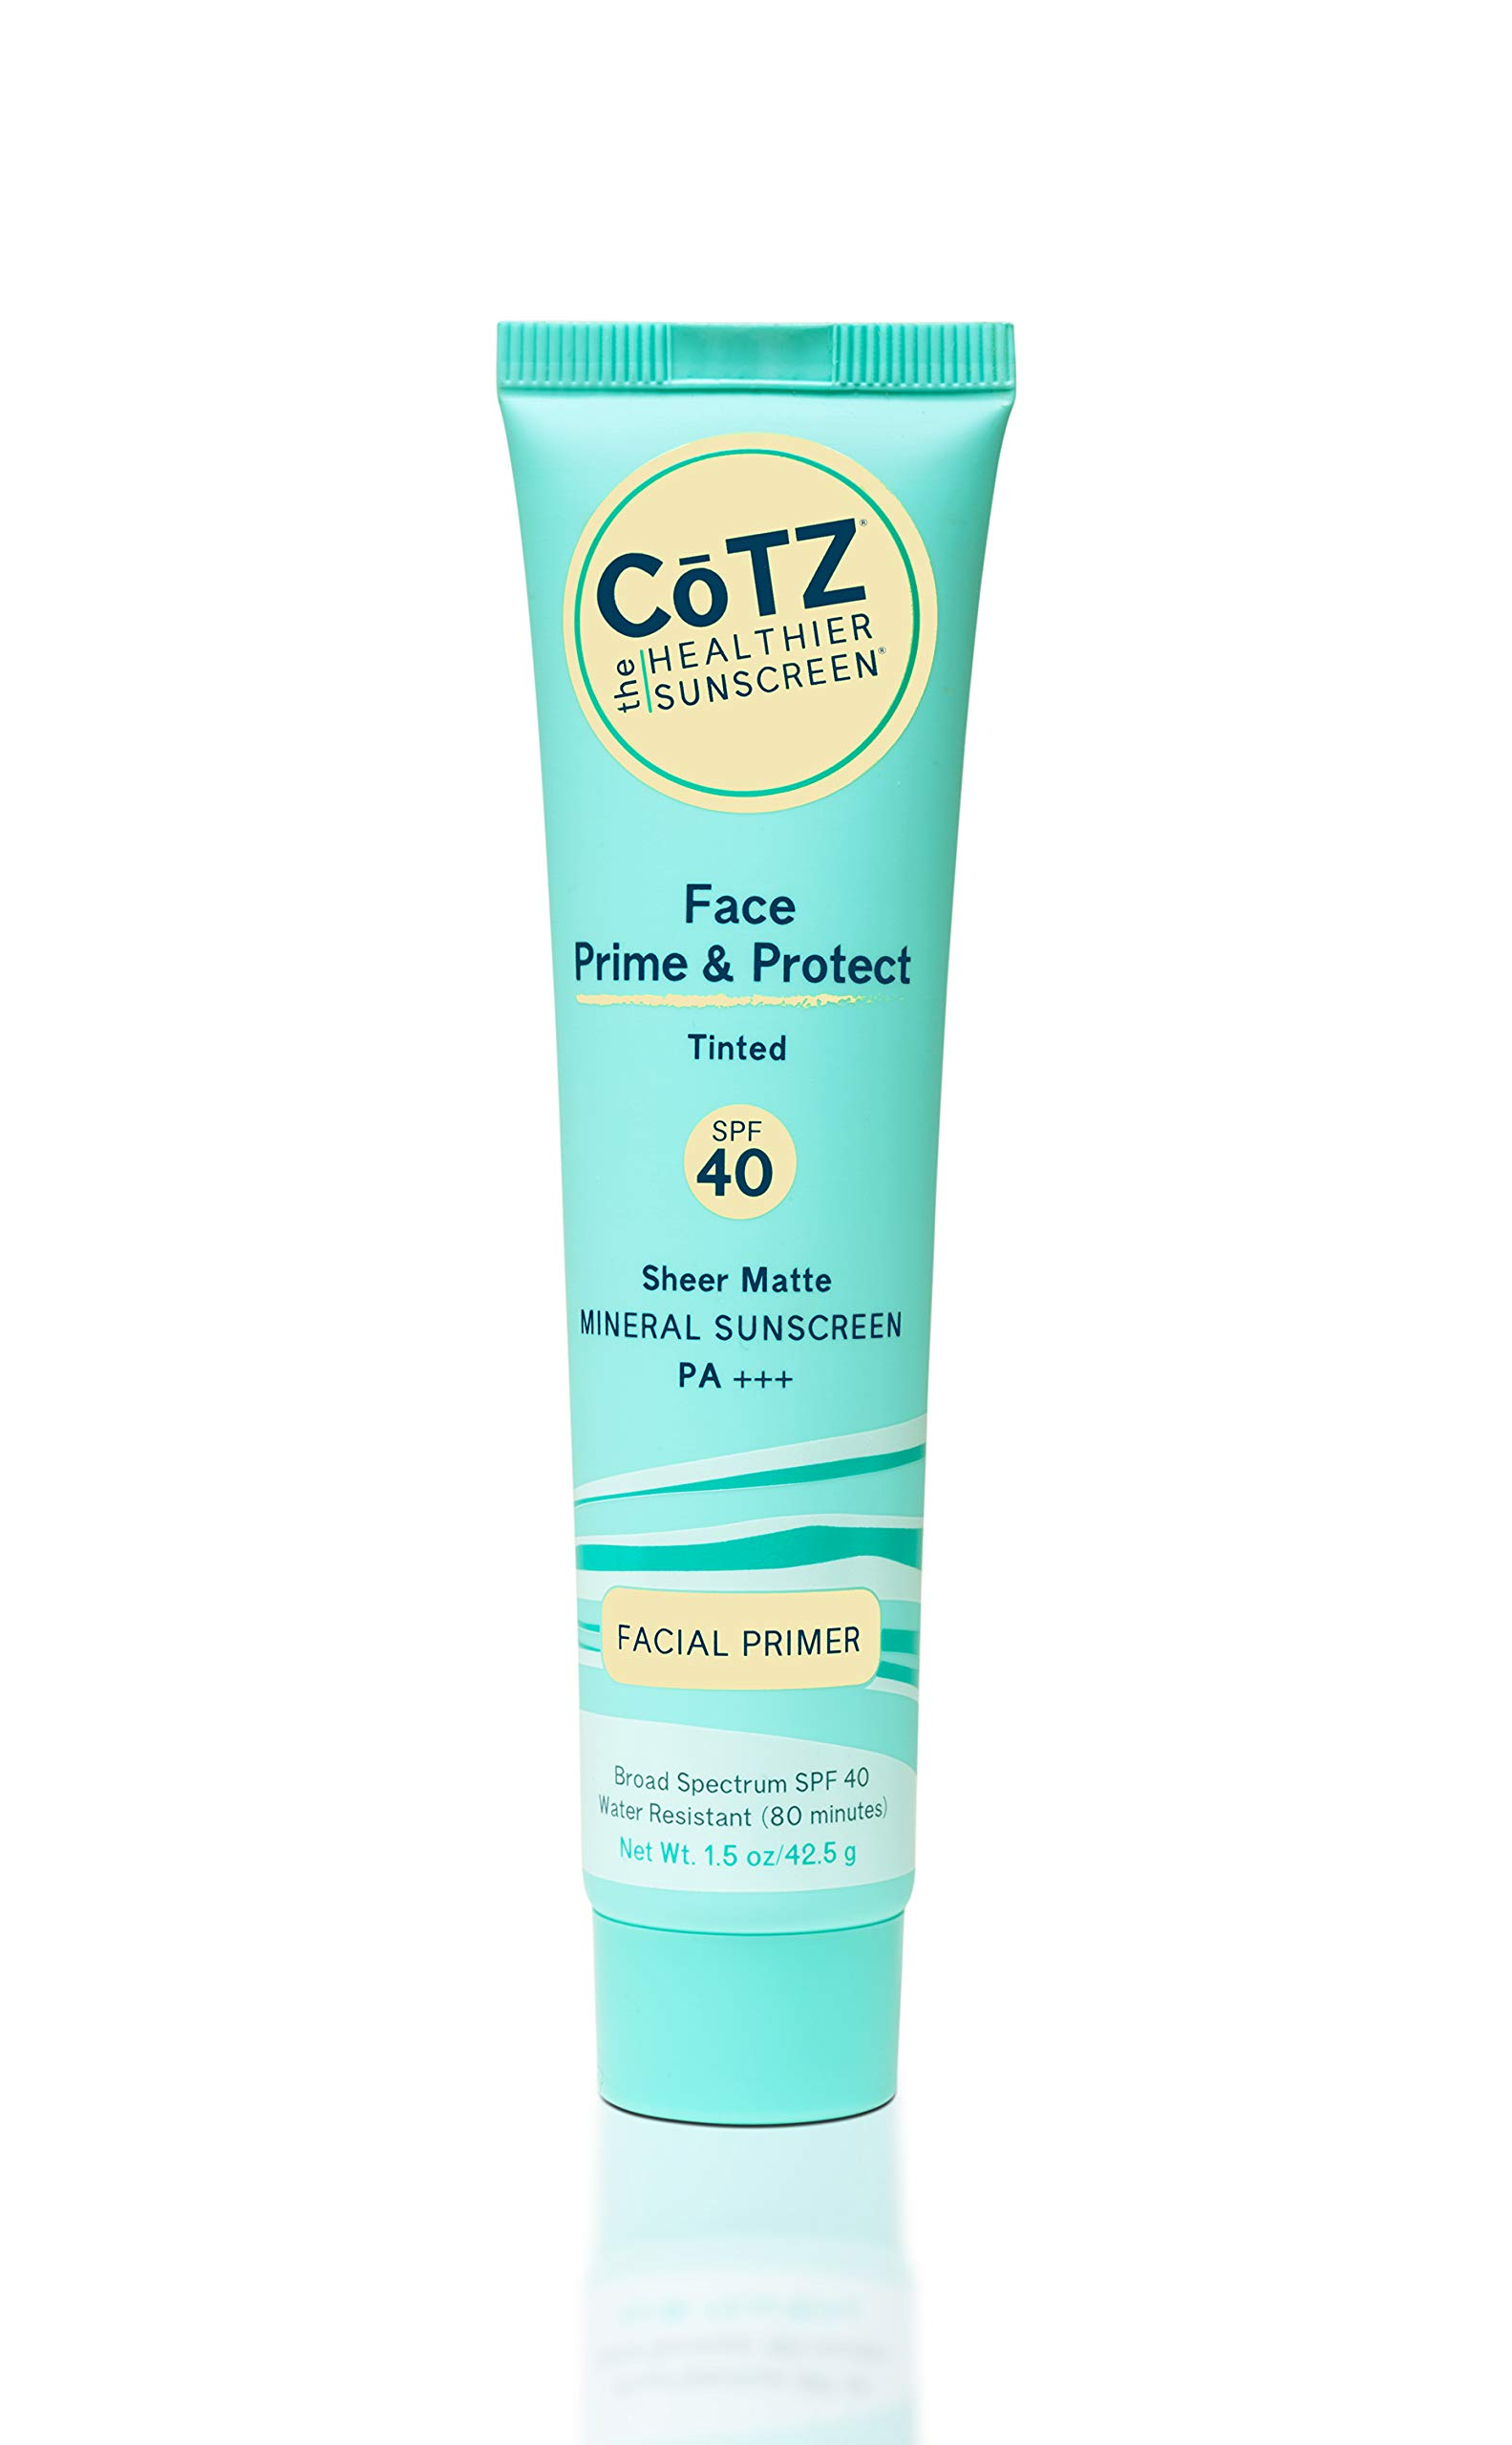 COTZ Face Prime & Protect Tinted Mineral Sunscreen and Facial Primer Broad Spectrum SPF 40; PA+++ 1.5 oz / 42.5 g.